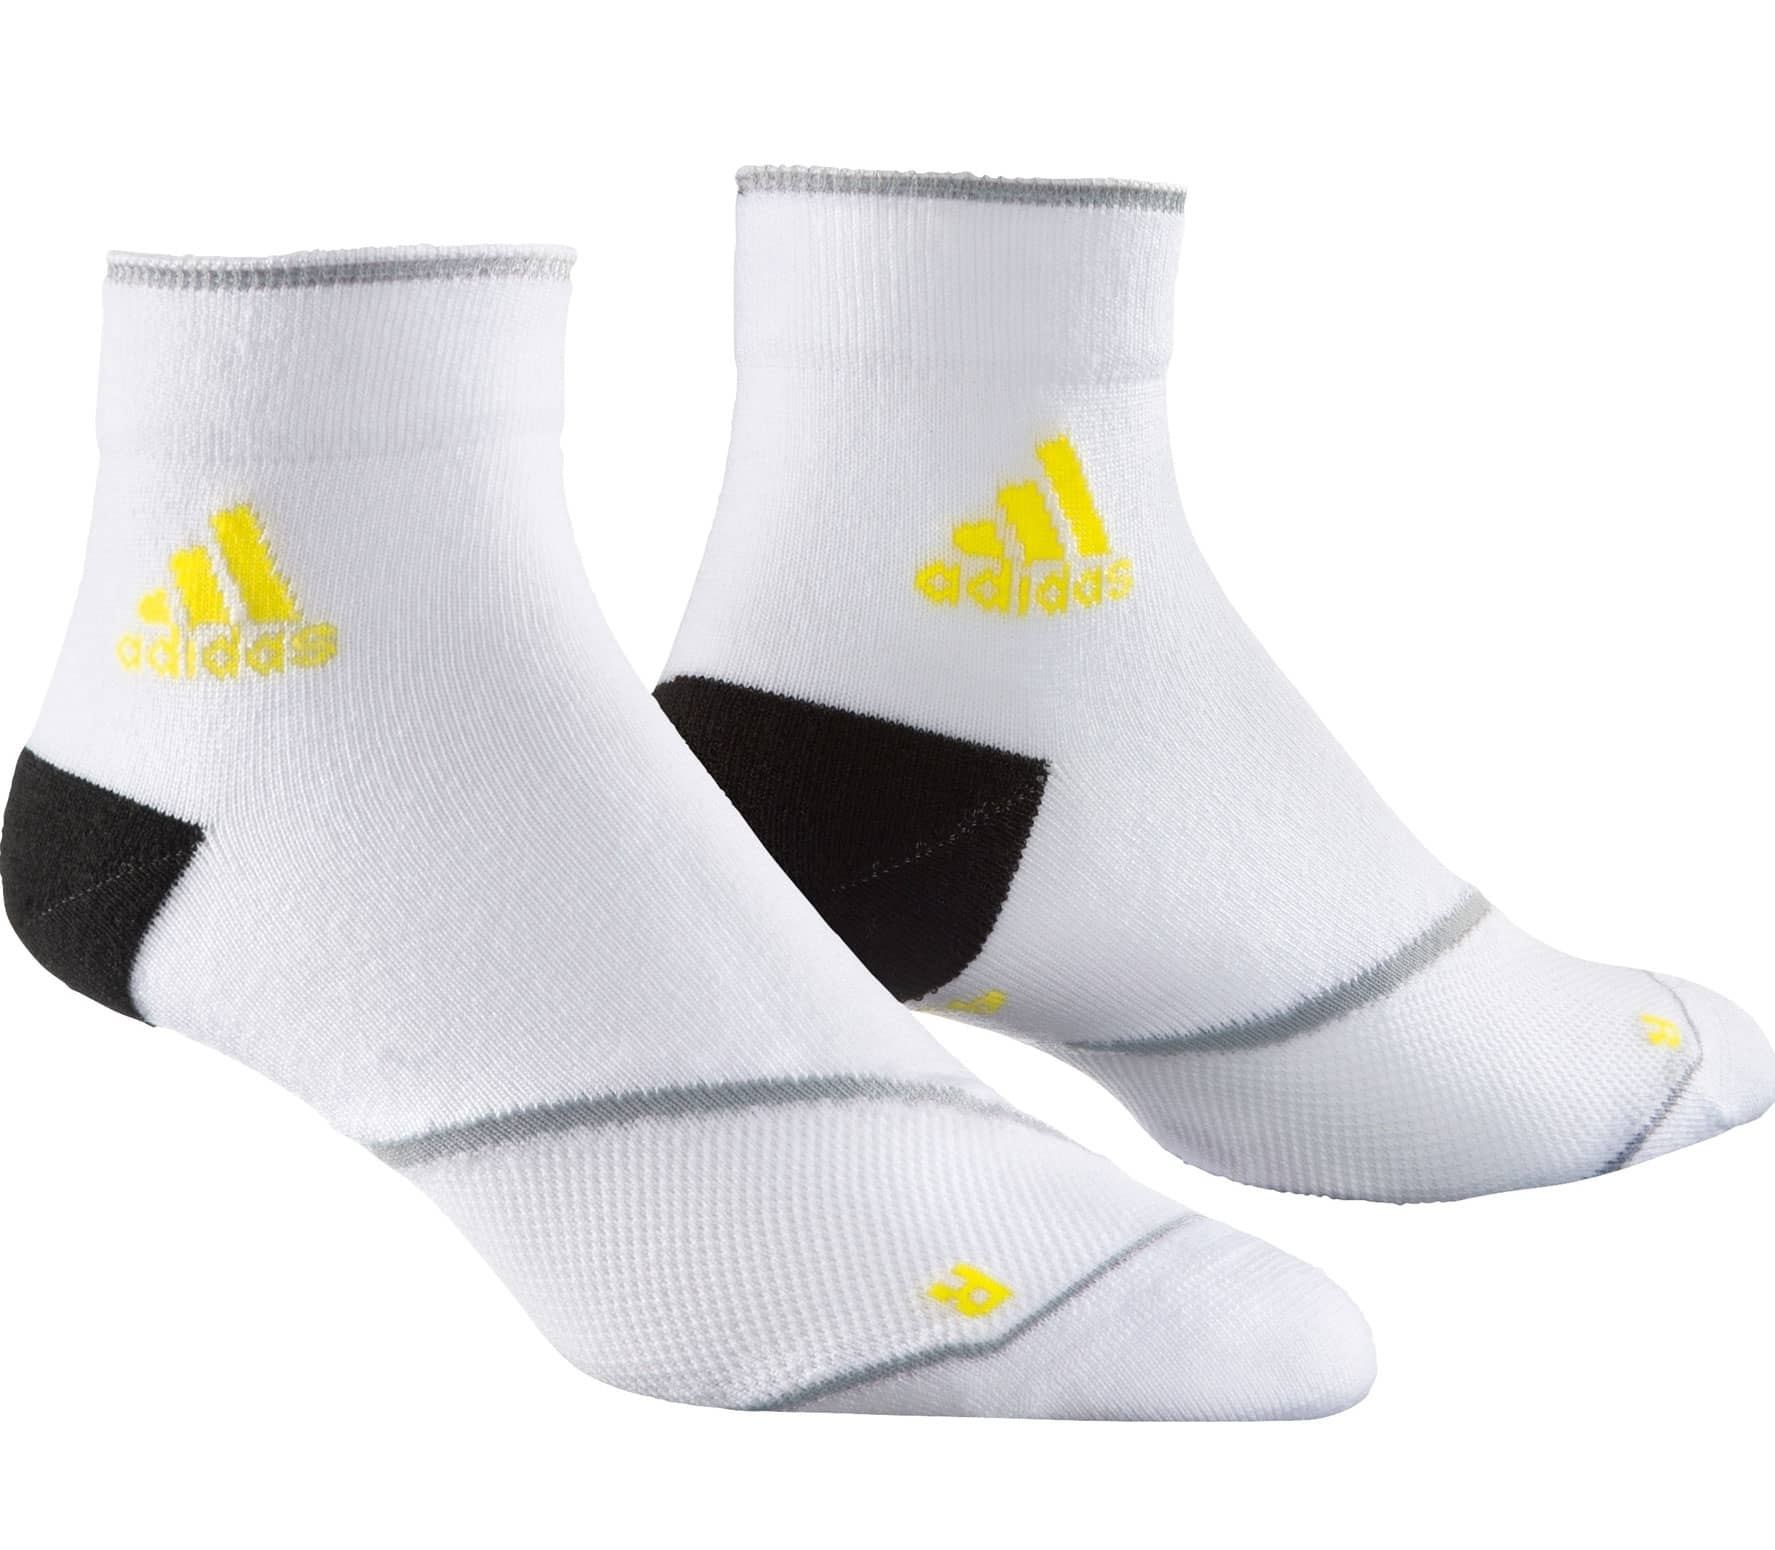 2-pair Of Adidas Adizero Tc Ankle Sock Running Socks Cushion Running Sport Sock Men's Clothing Clothing & Accessories